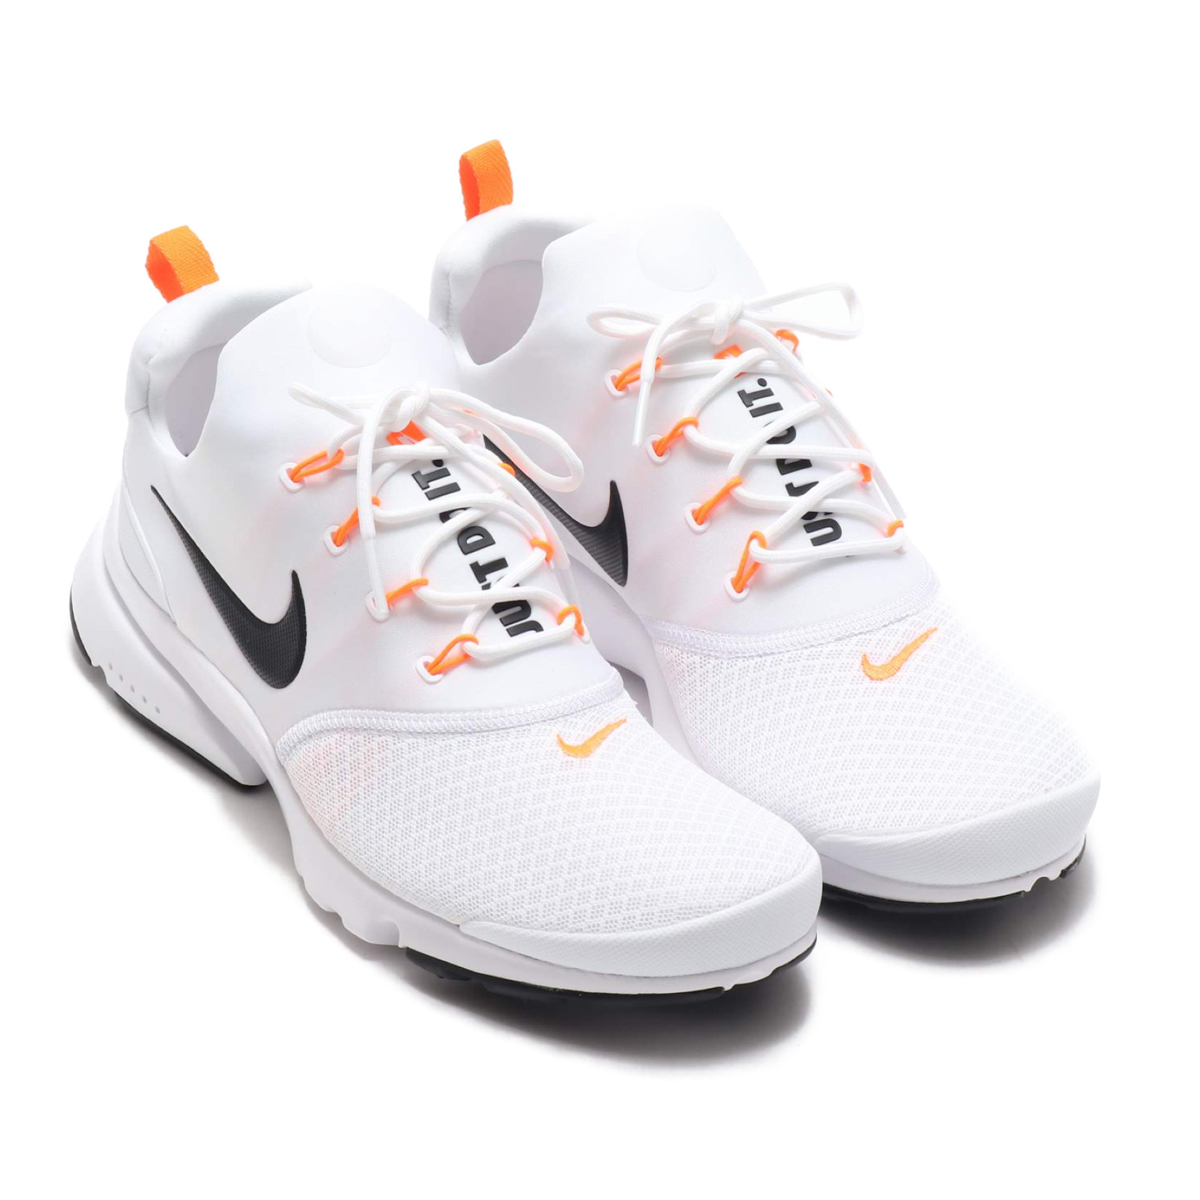 d4520732986 NIKE PRESTO FLY JDI (Nike presto fly JDI) WHITE BLACK-TOTAL ORANGE 18FA-S